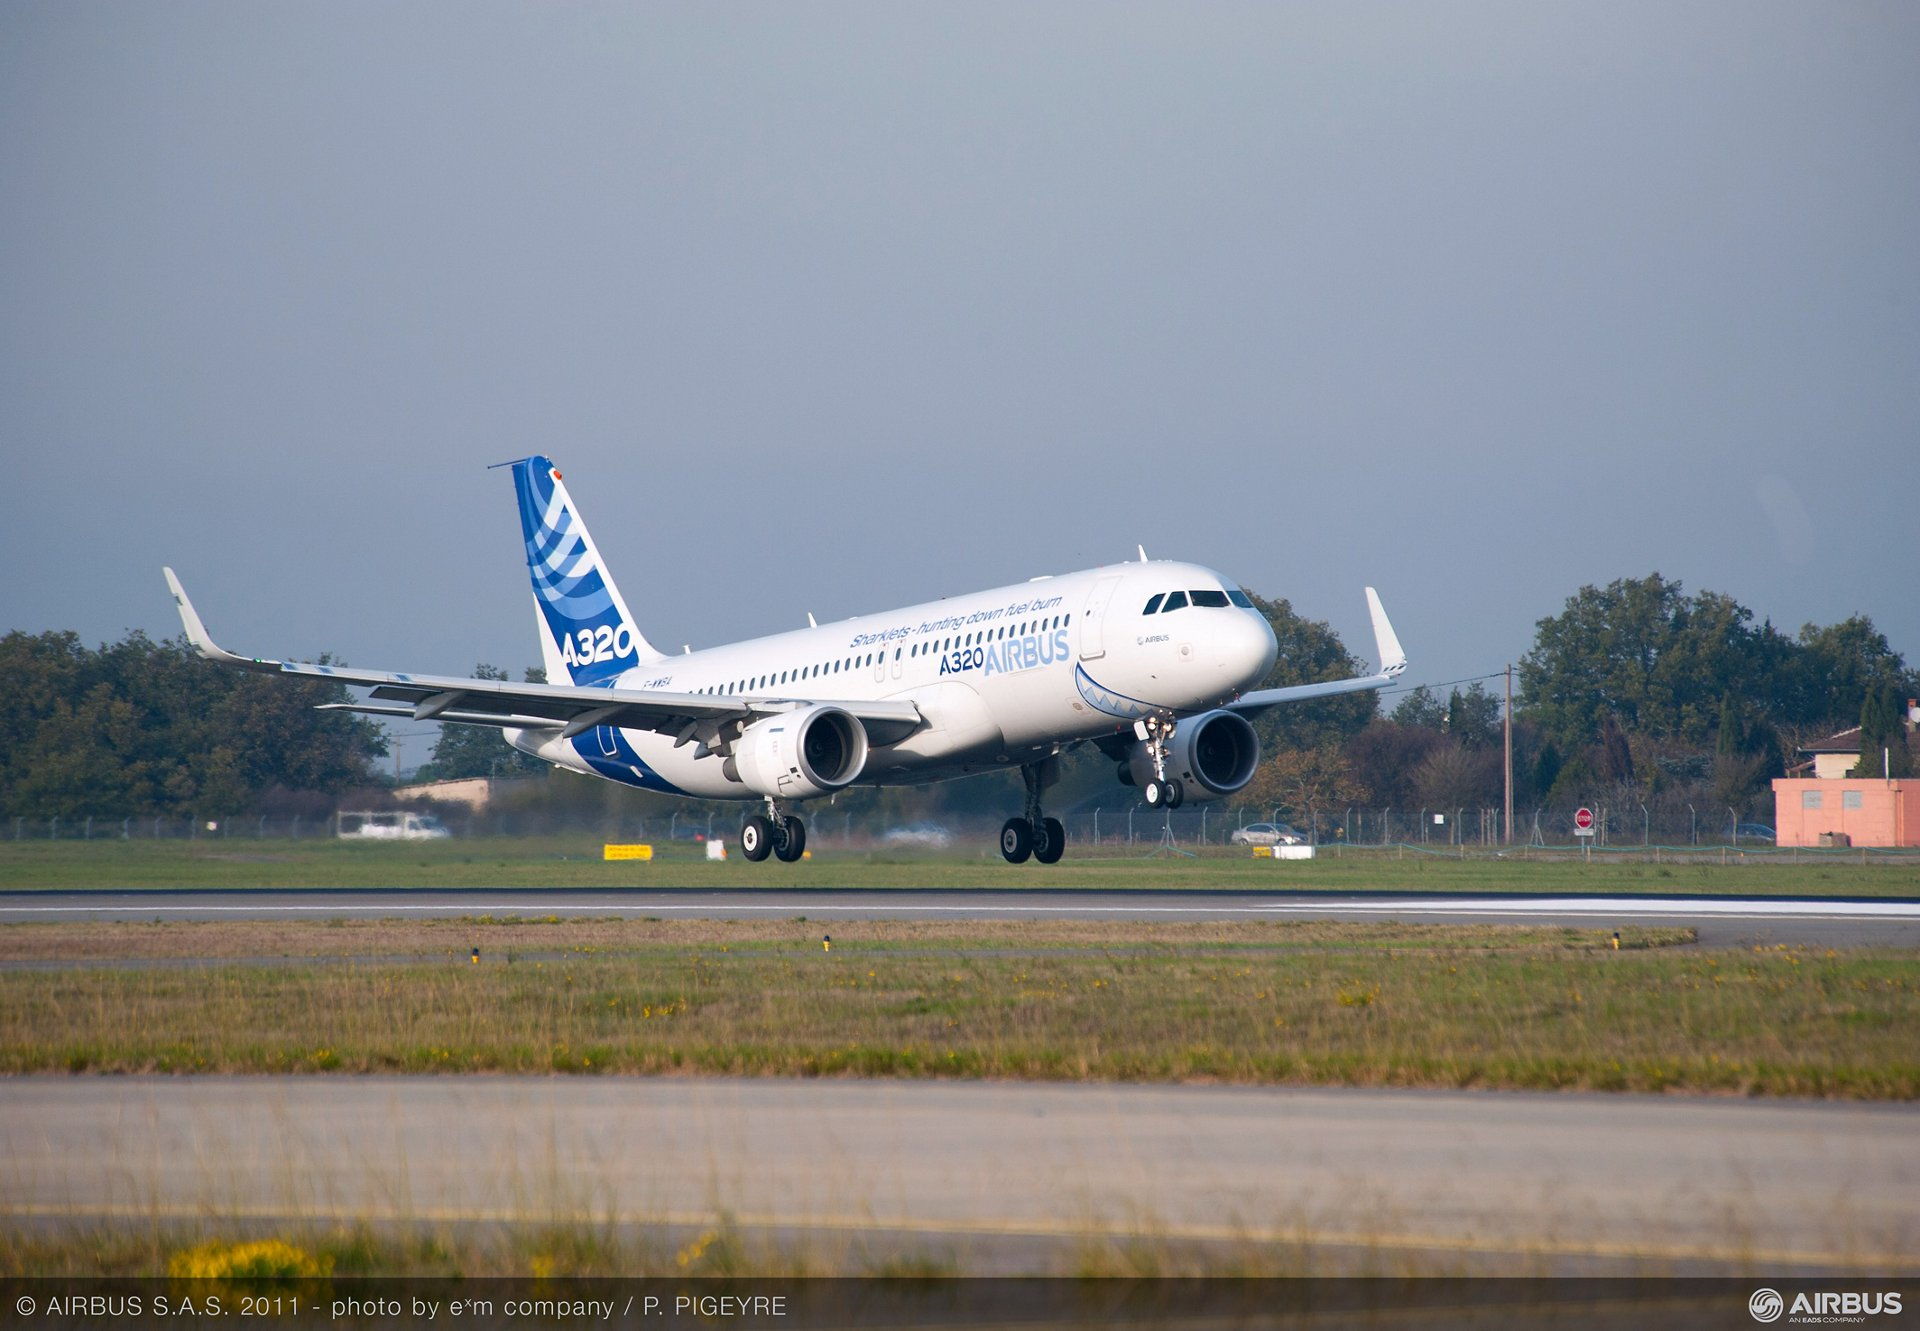 Airbus has completed the first flight of the 'Sharklet' wing-tip devices on the company's A320 development aircraft (MSN 001). This milestone marks the start of the early flight-test campaign to capture data for fine-tuning the flight laws, as well as for certification and performance validation. (30 November 2011)